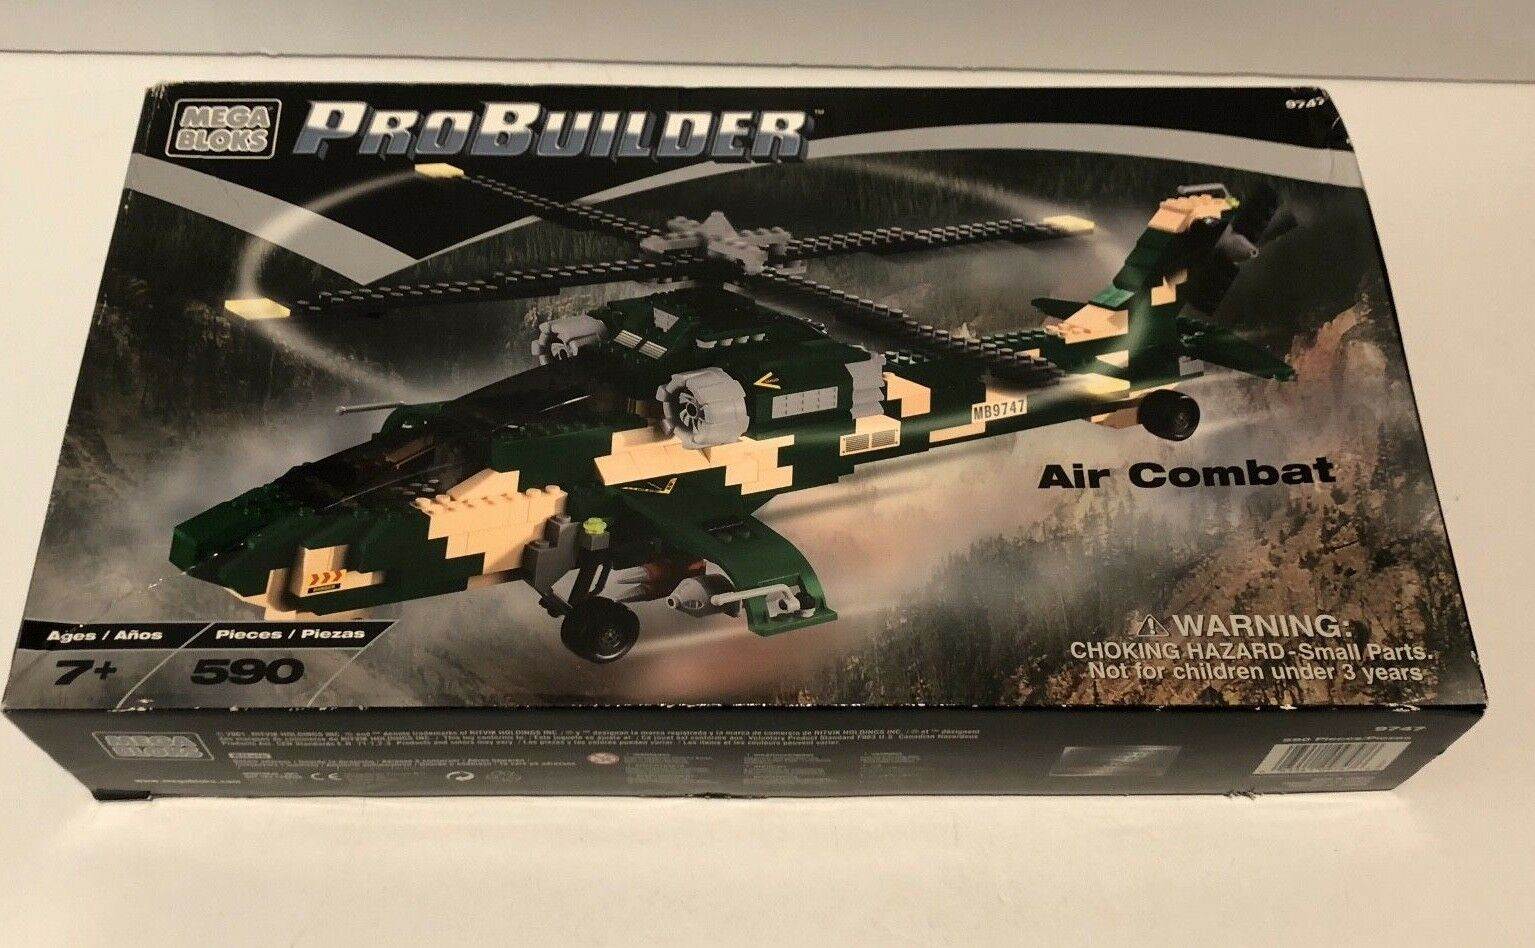 Mega Bloks Pro Builder Air Combat, 9747, 590 Pieces, Helicopter NEW SEALED